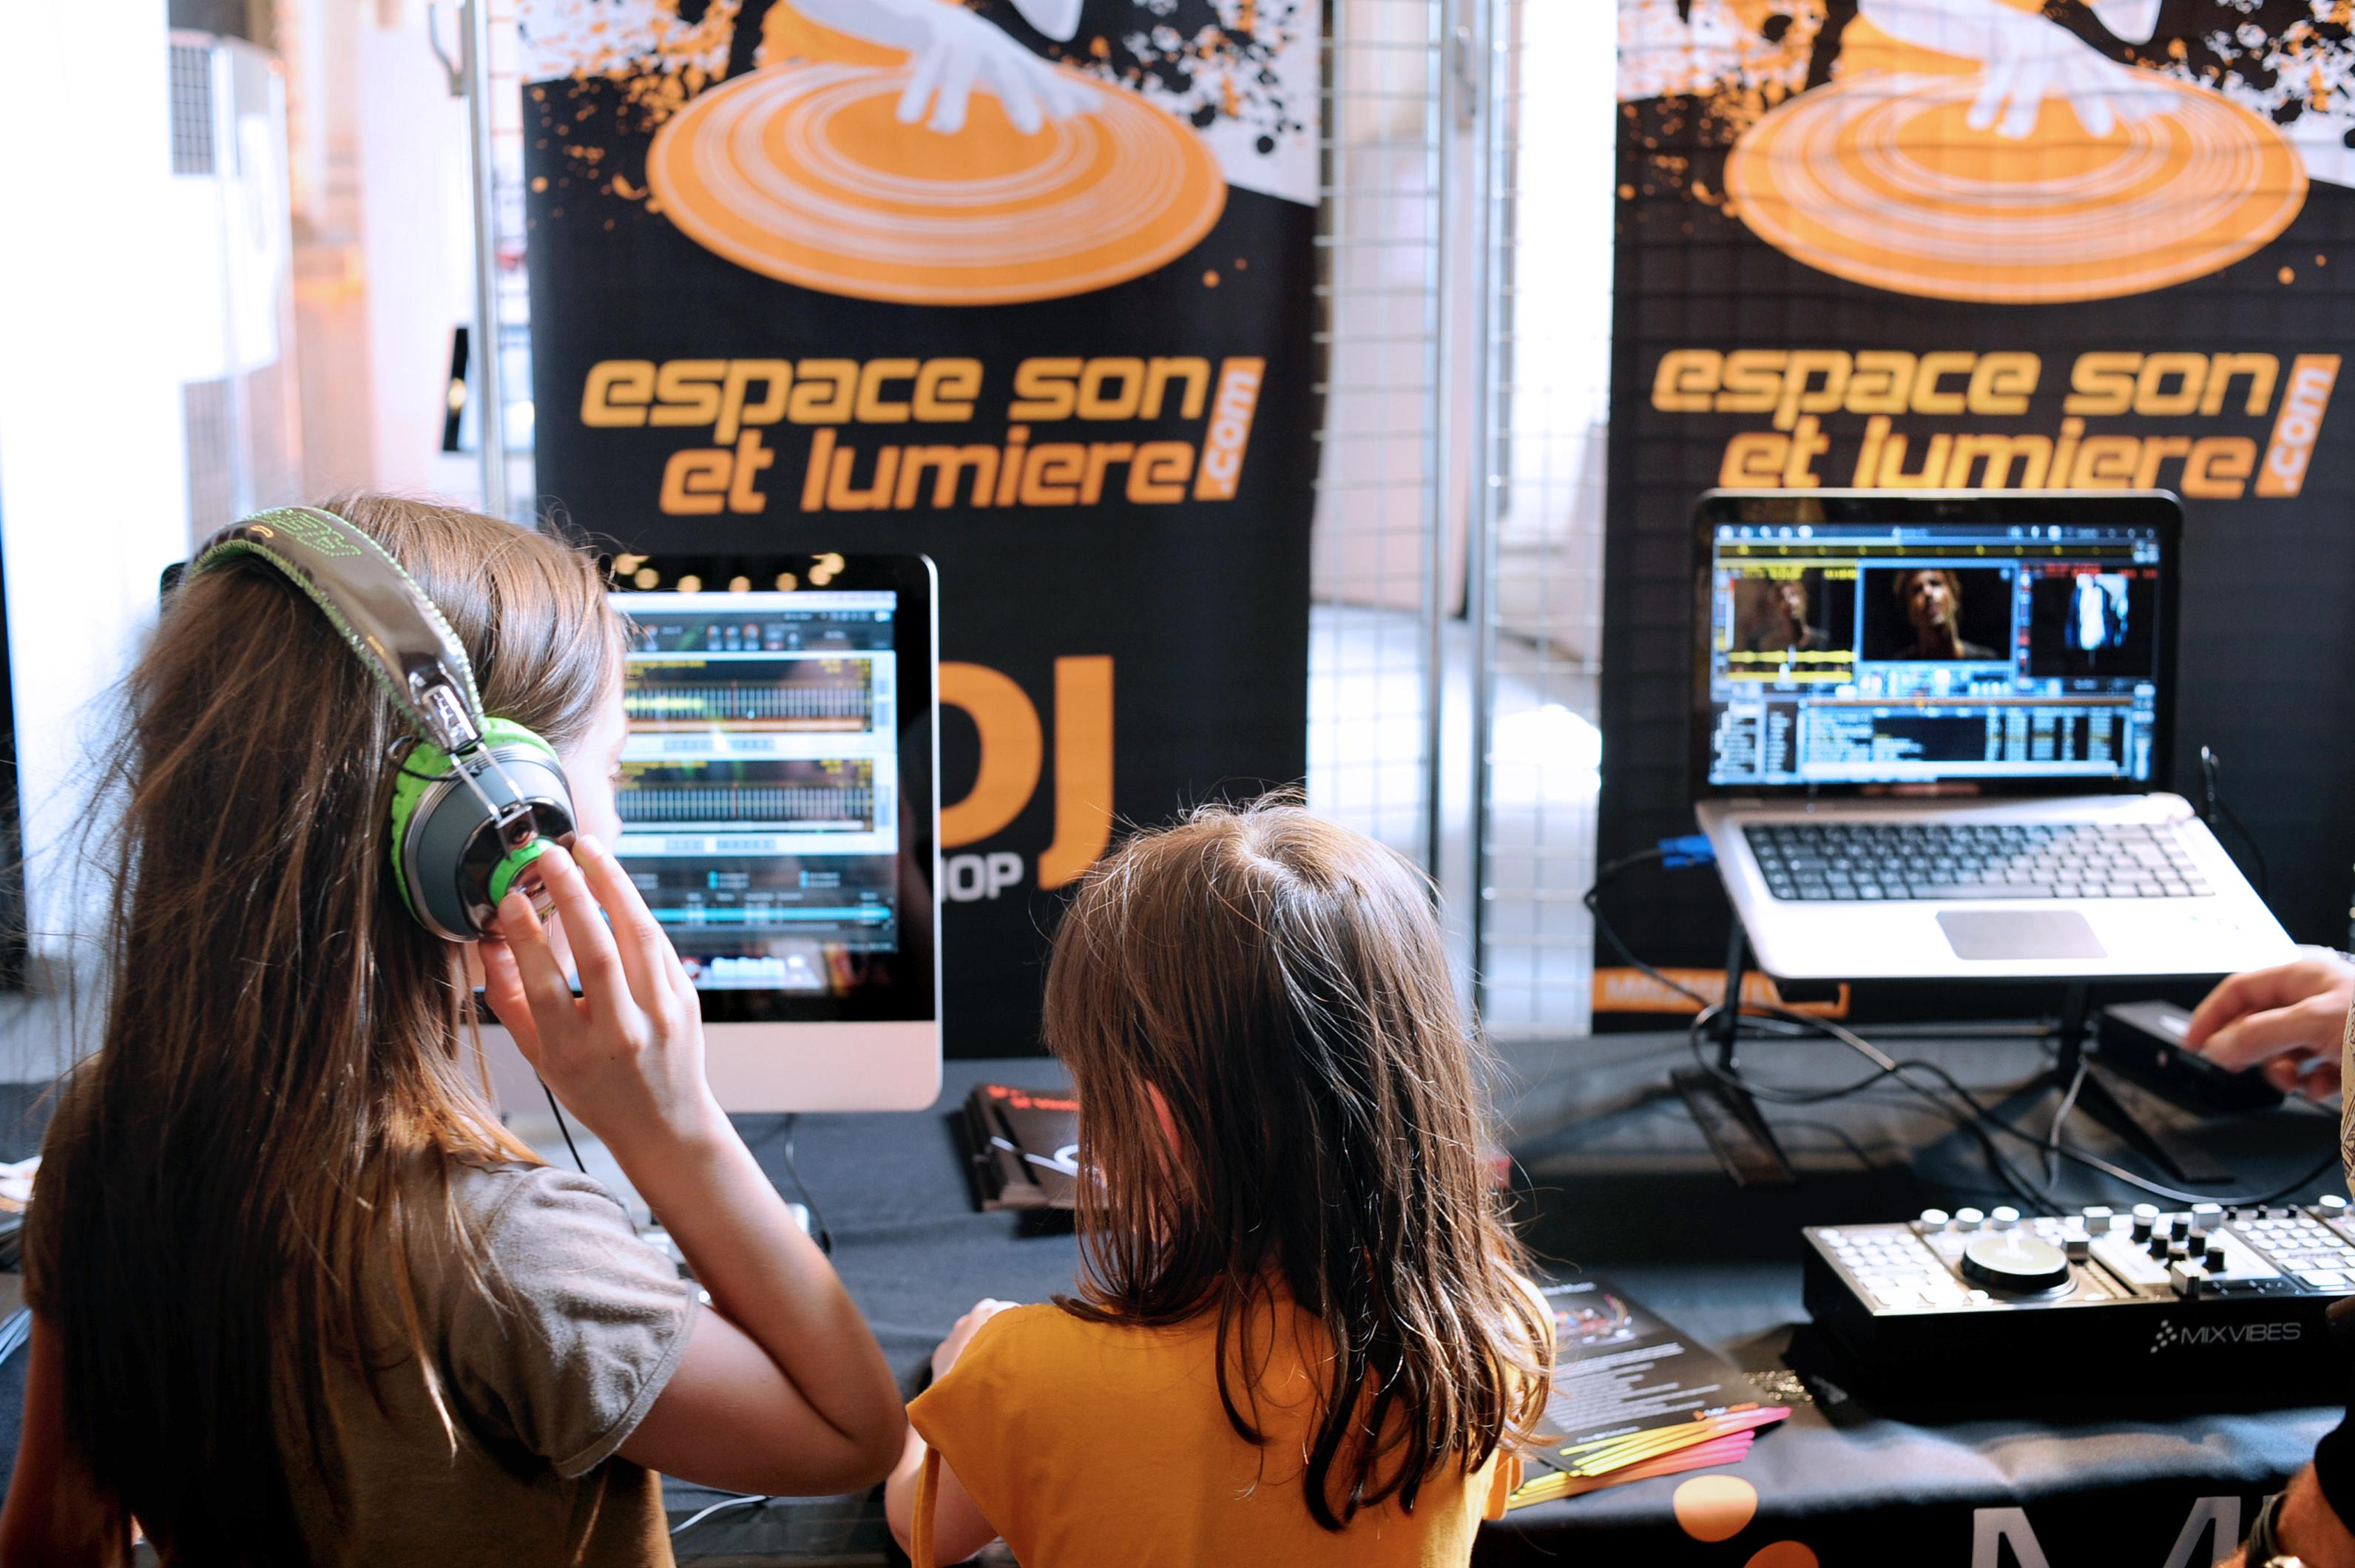 Children learn to mix electronic music on June 3, 2011 during the 'Mini sonore', a workshop for children between 4 and 10 years, as part of the 'Nuits Sonores' (The nights of sounds) electronic music Festival in Lyon, eastern France.